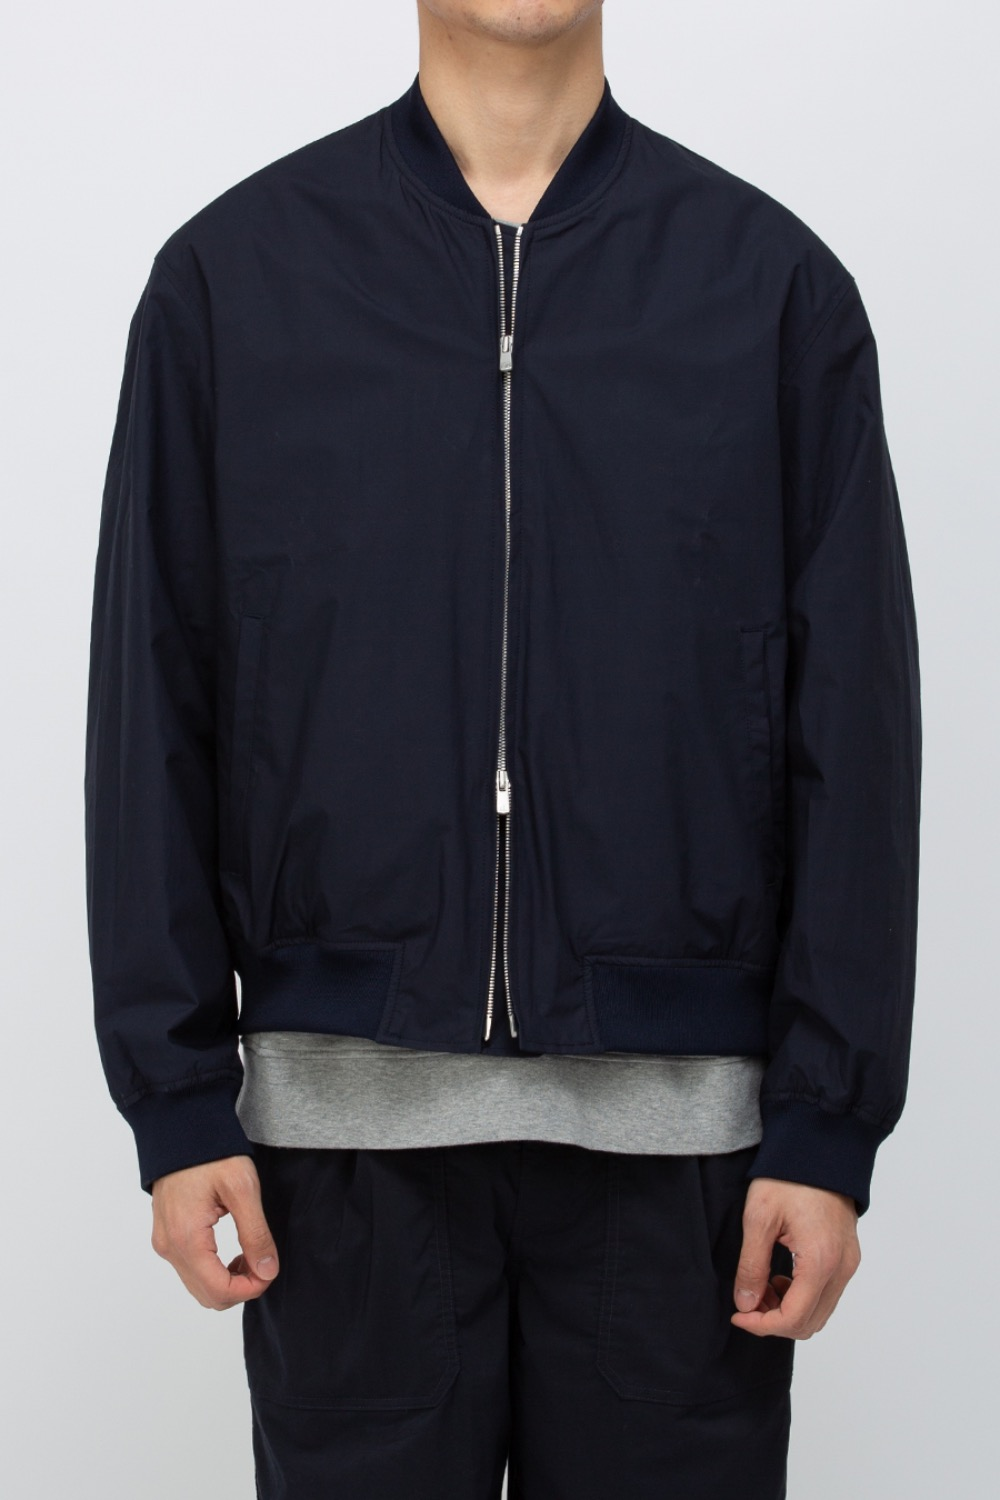 BOMBER JACKET COTTON 80/1 TYPEWRITER CLOTH URETHANE COATING